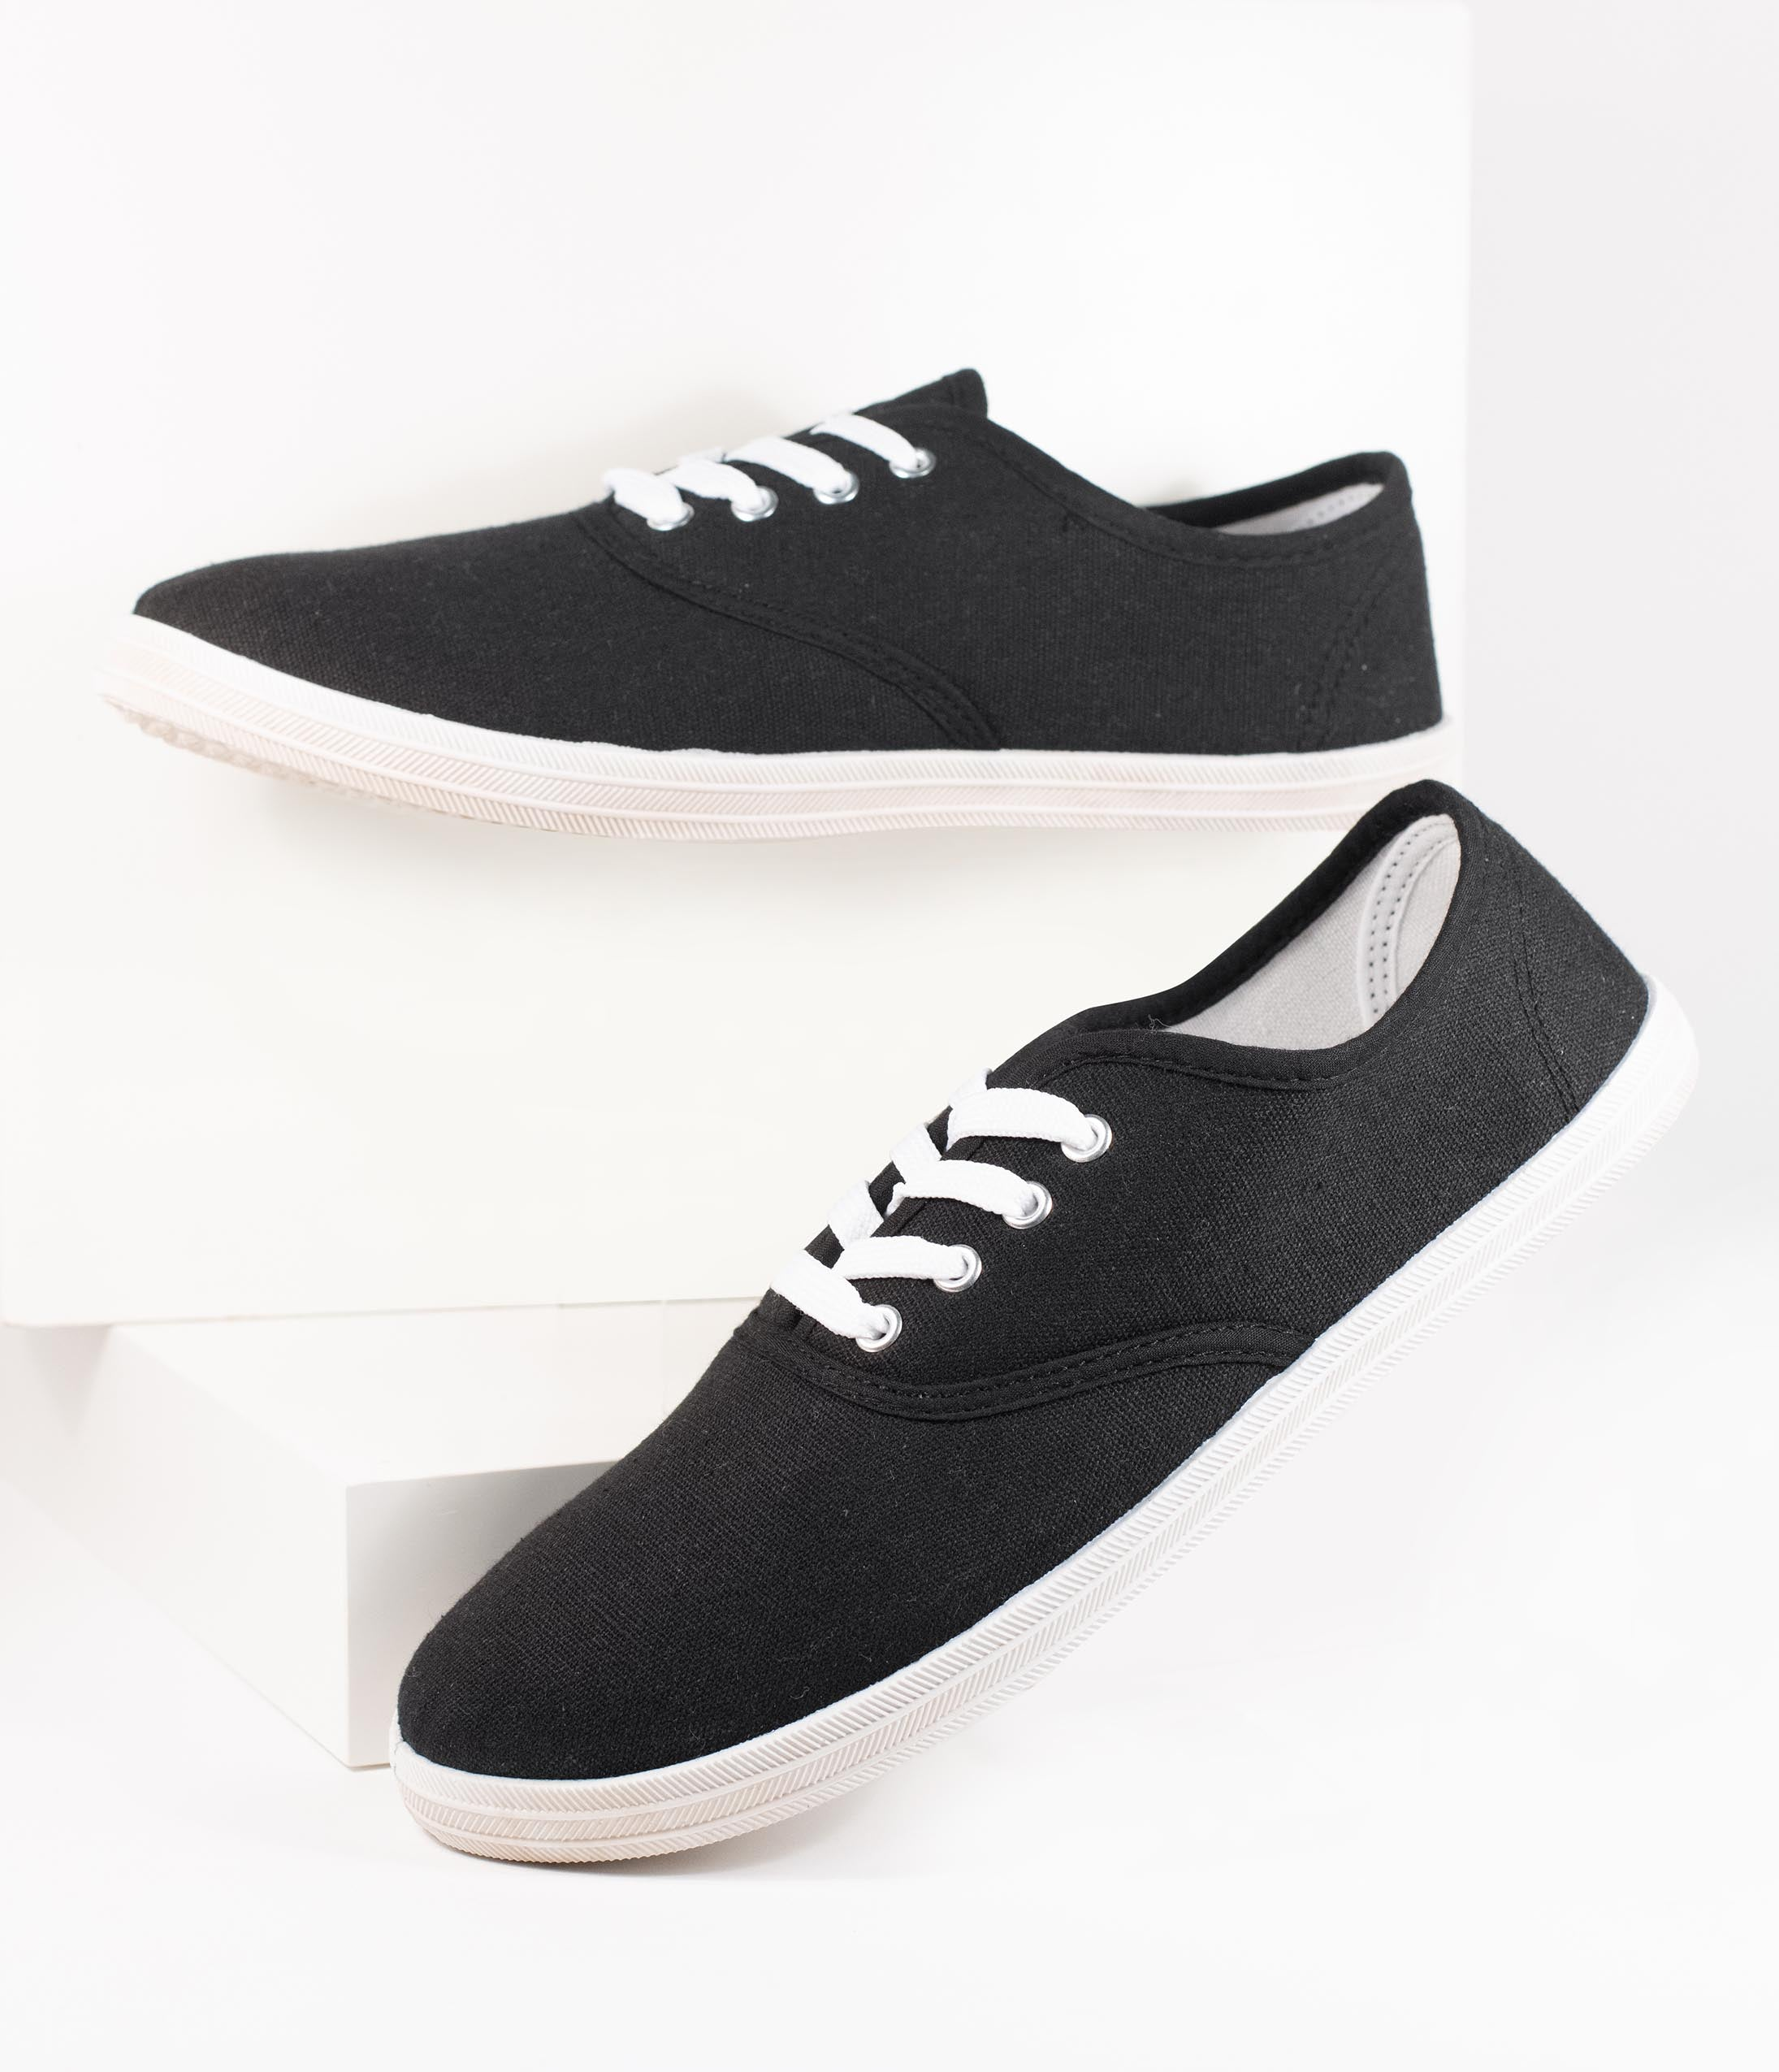 1950s Style Shoes | Heels, Flats, Boots Black Canvas Ladies Sneakers $18.00 AT vintagedancer.com